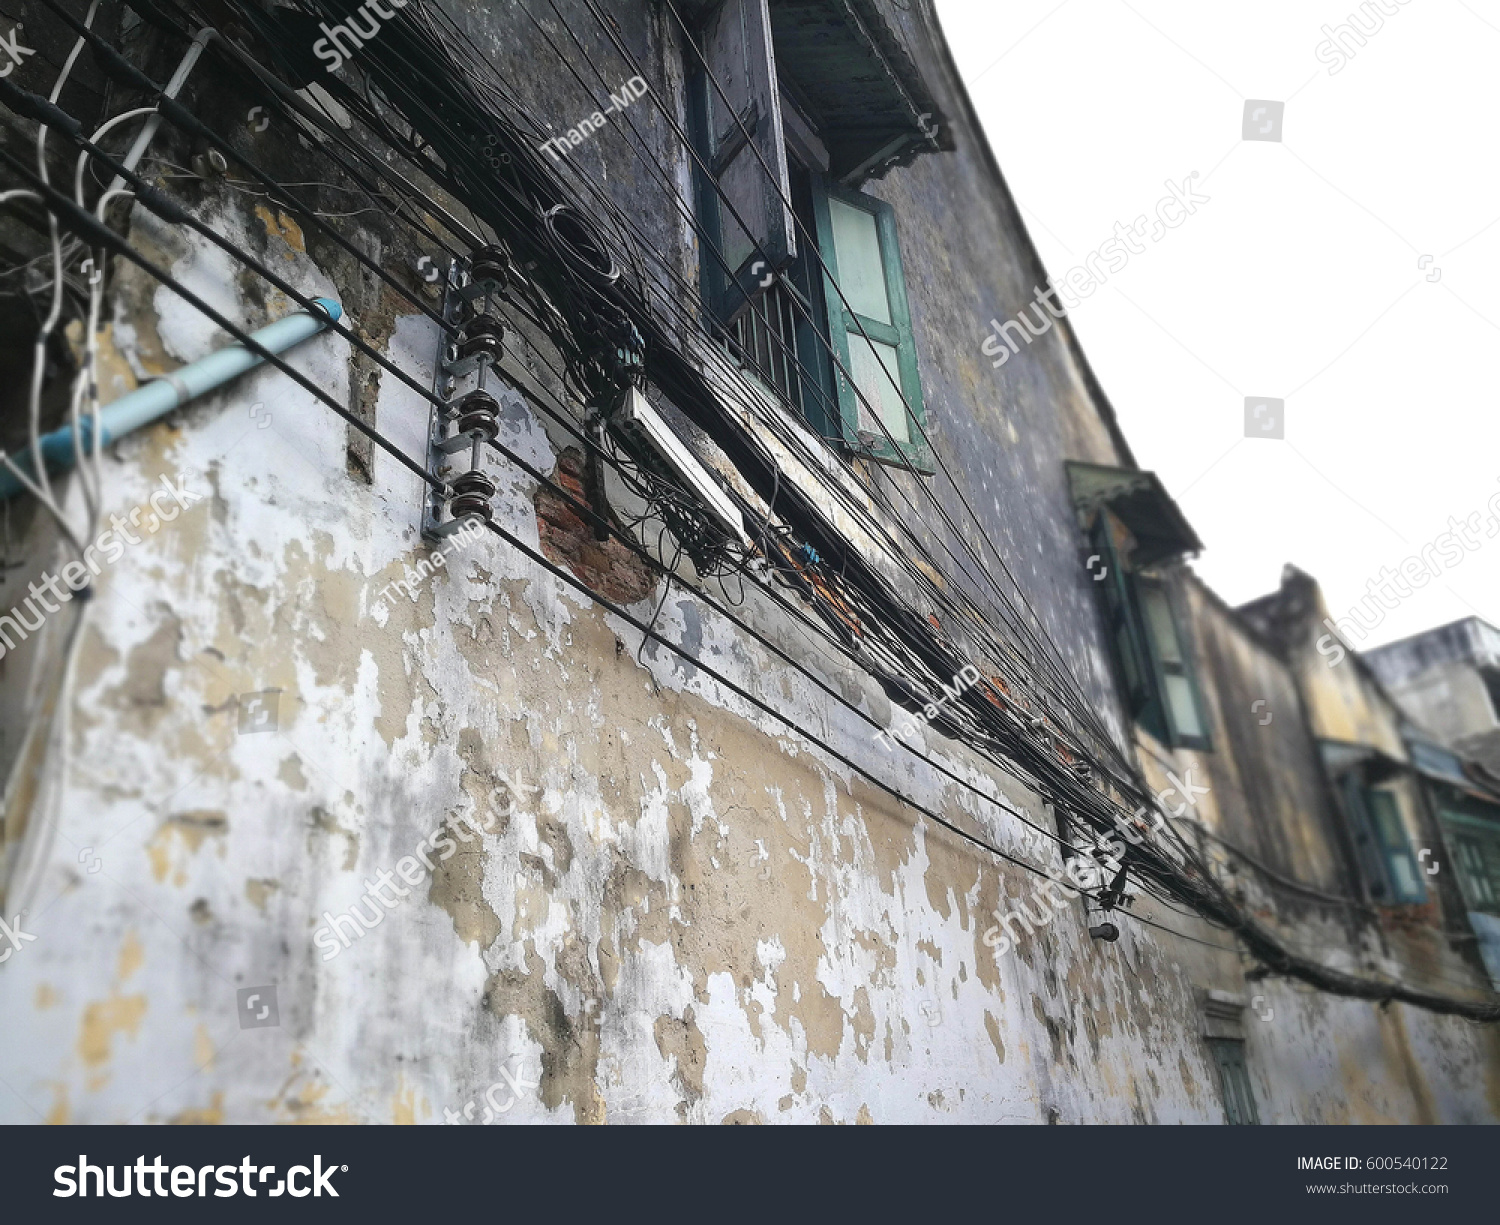 wires hanging on old house, The wire cable is tangle, Need electric wiring  to